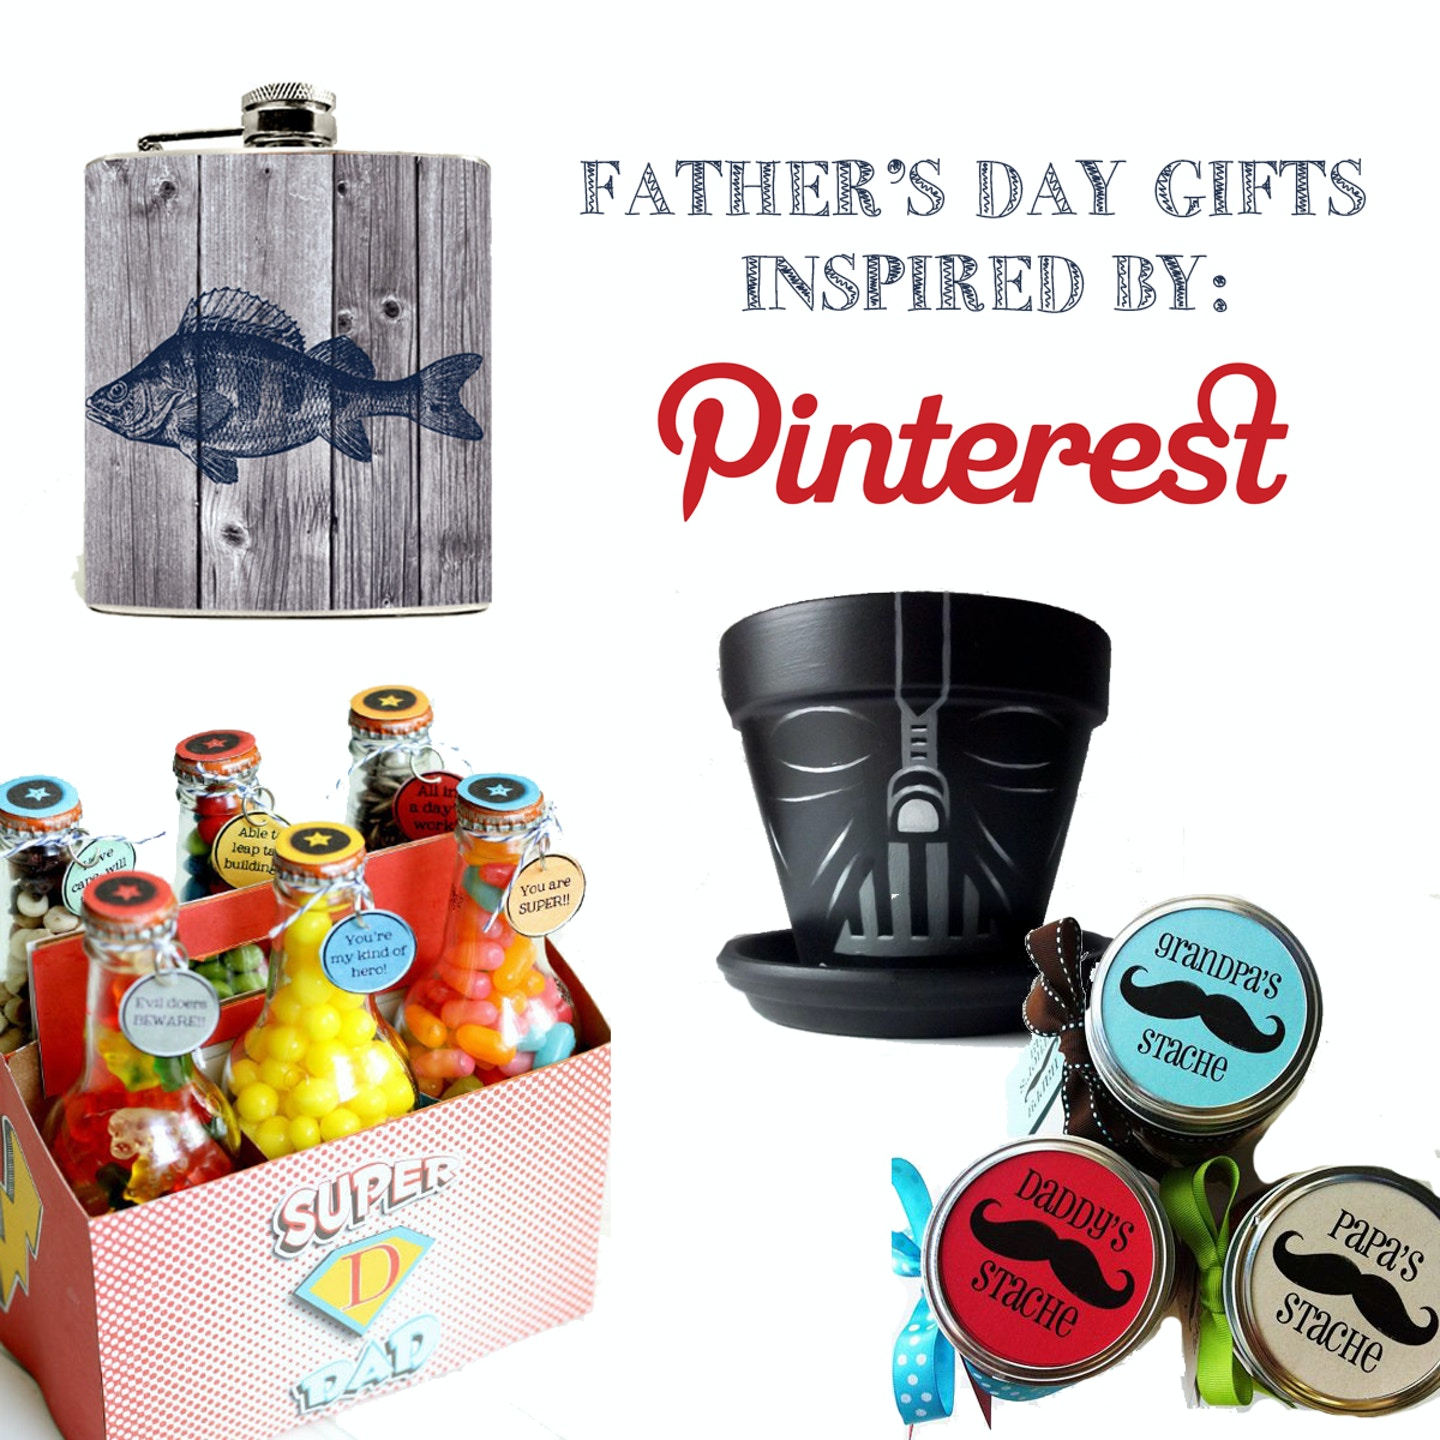 Pinterest Father's Day gifts for any dad